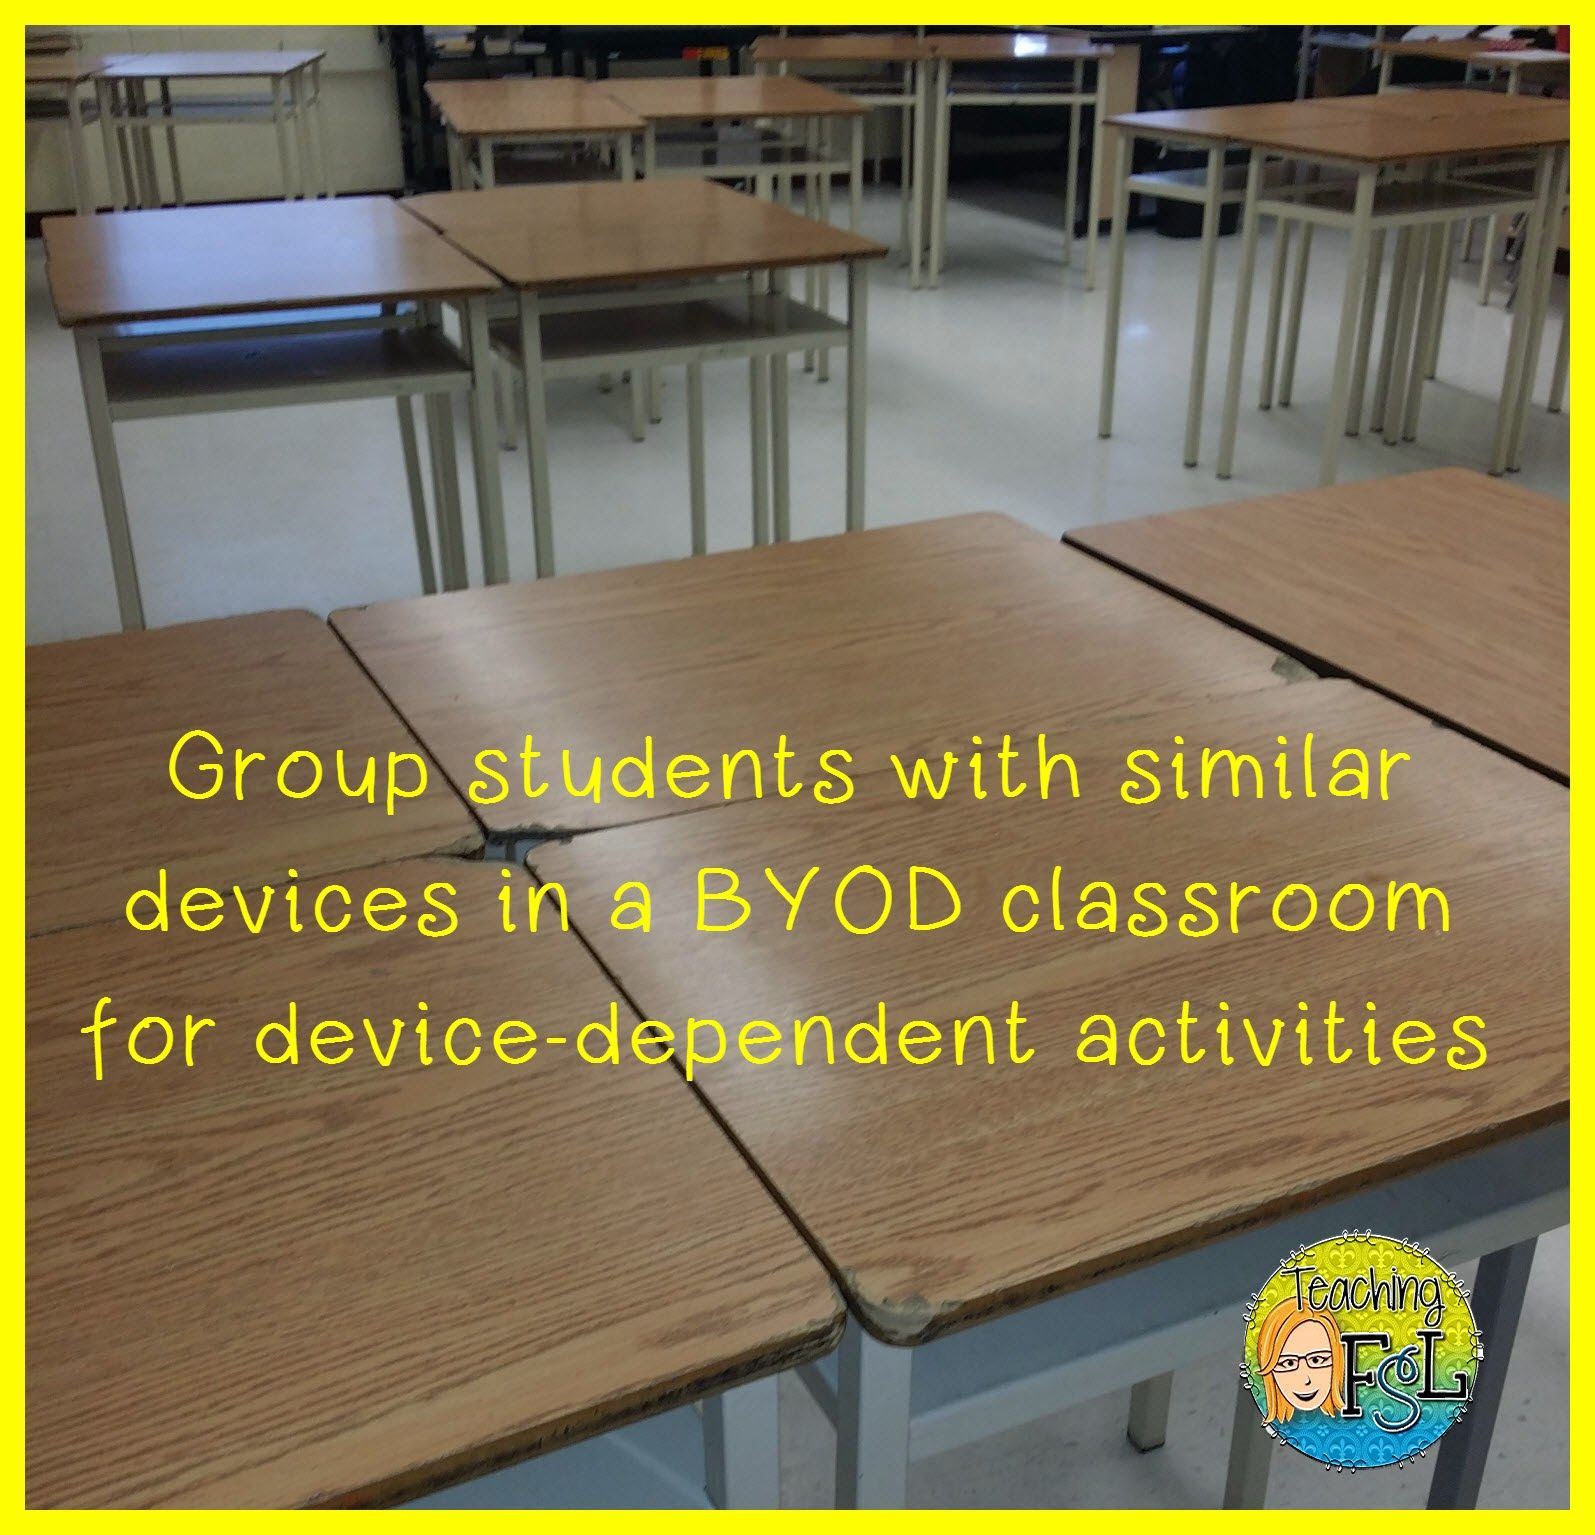 Teaching FSL: Bright Idea for BYOD Classroom Management